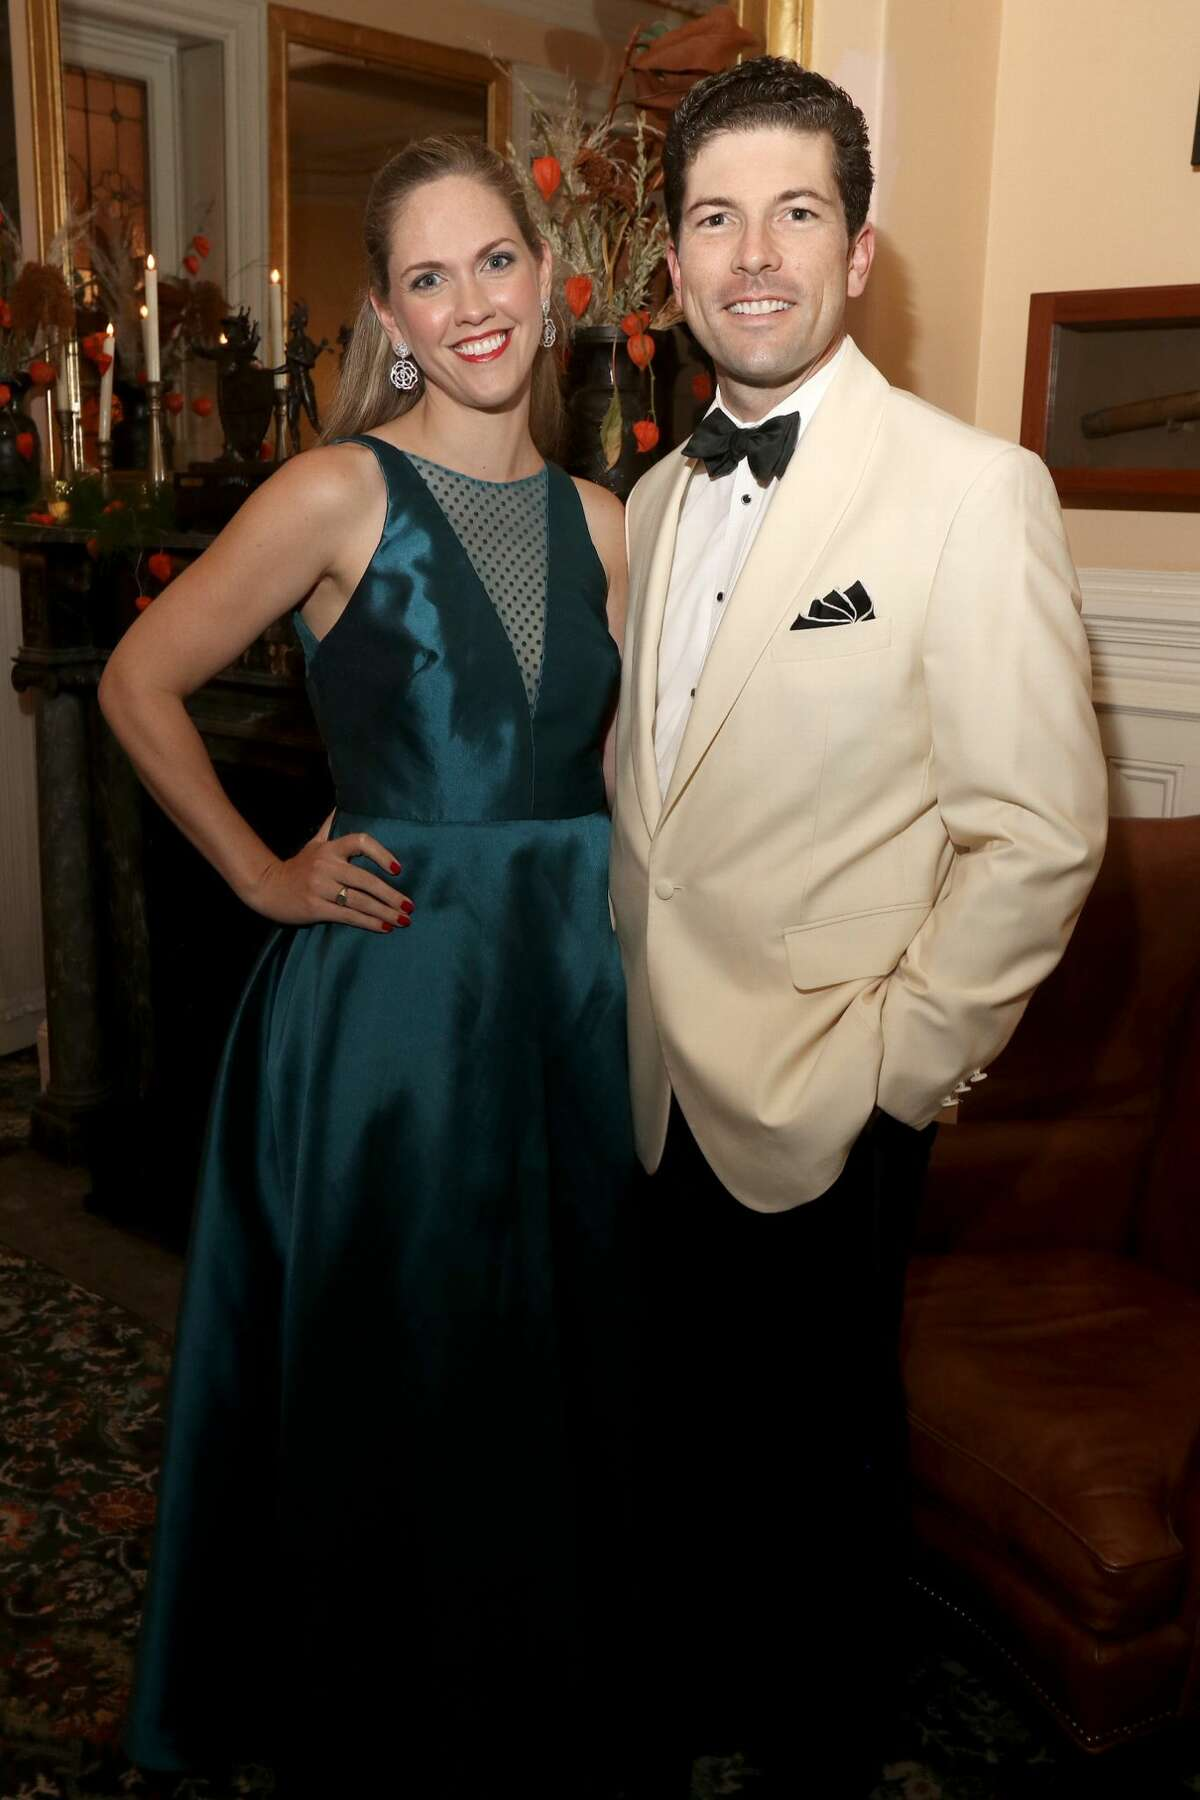 Were you Seen at The Anniversary Gala, celebrating one hundred forty years of The Fort Orange Club, at The Fort Orange Club in Albany on Saturday, September 25, 2021?